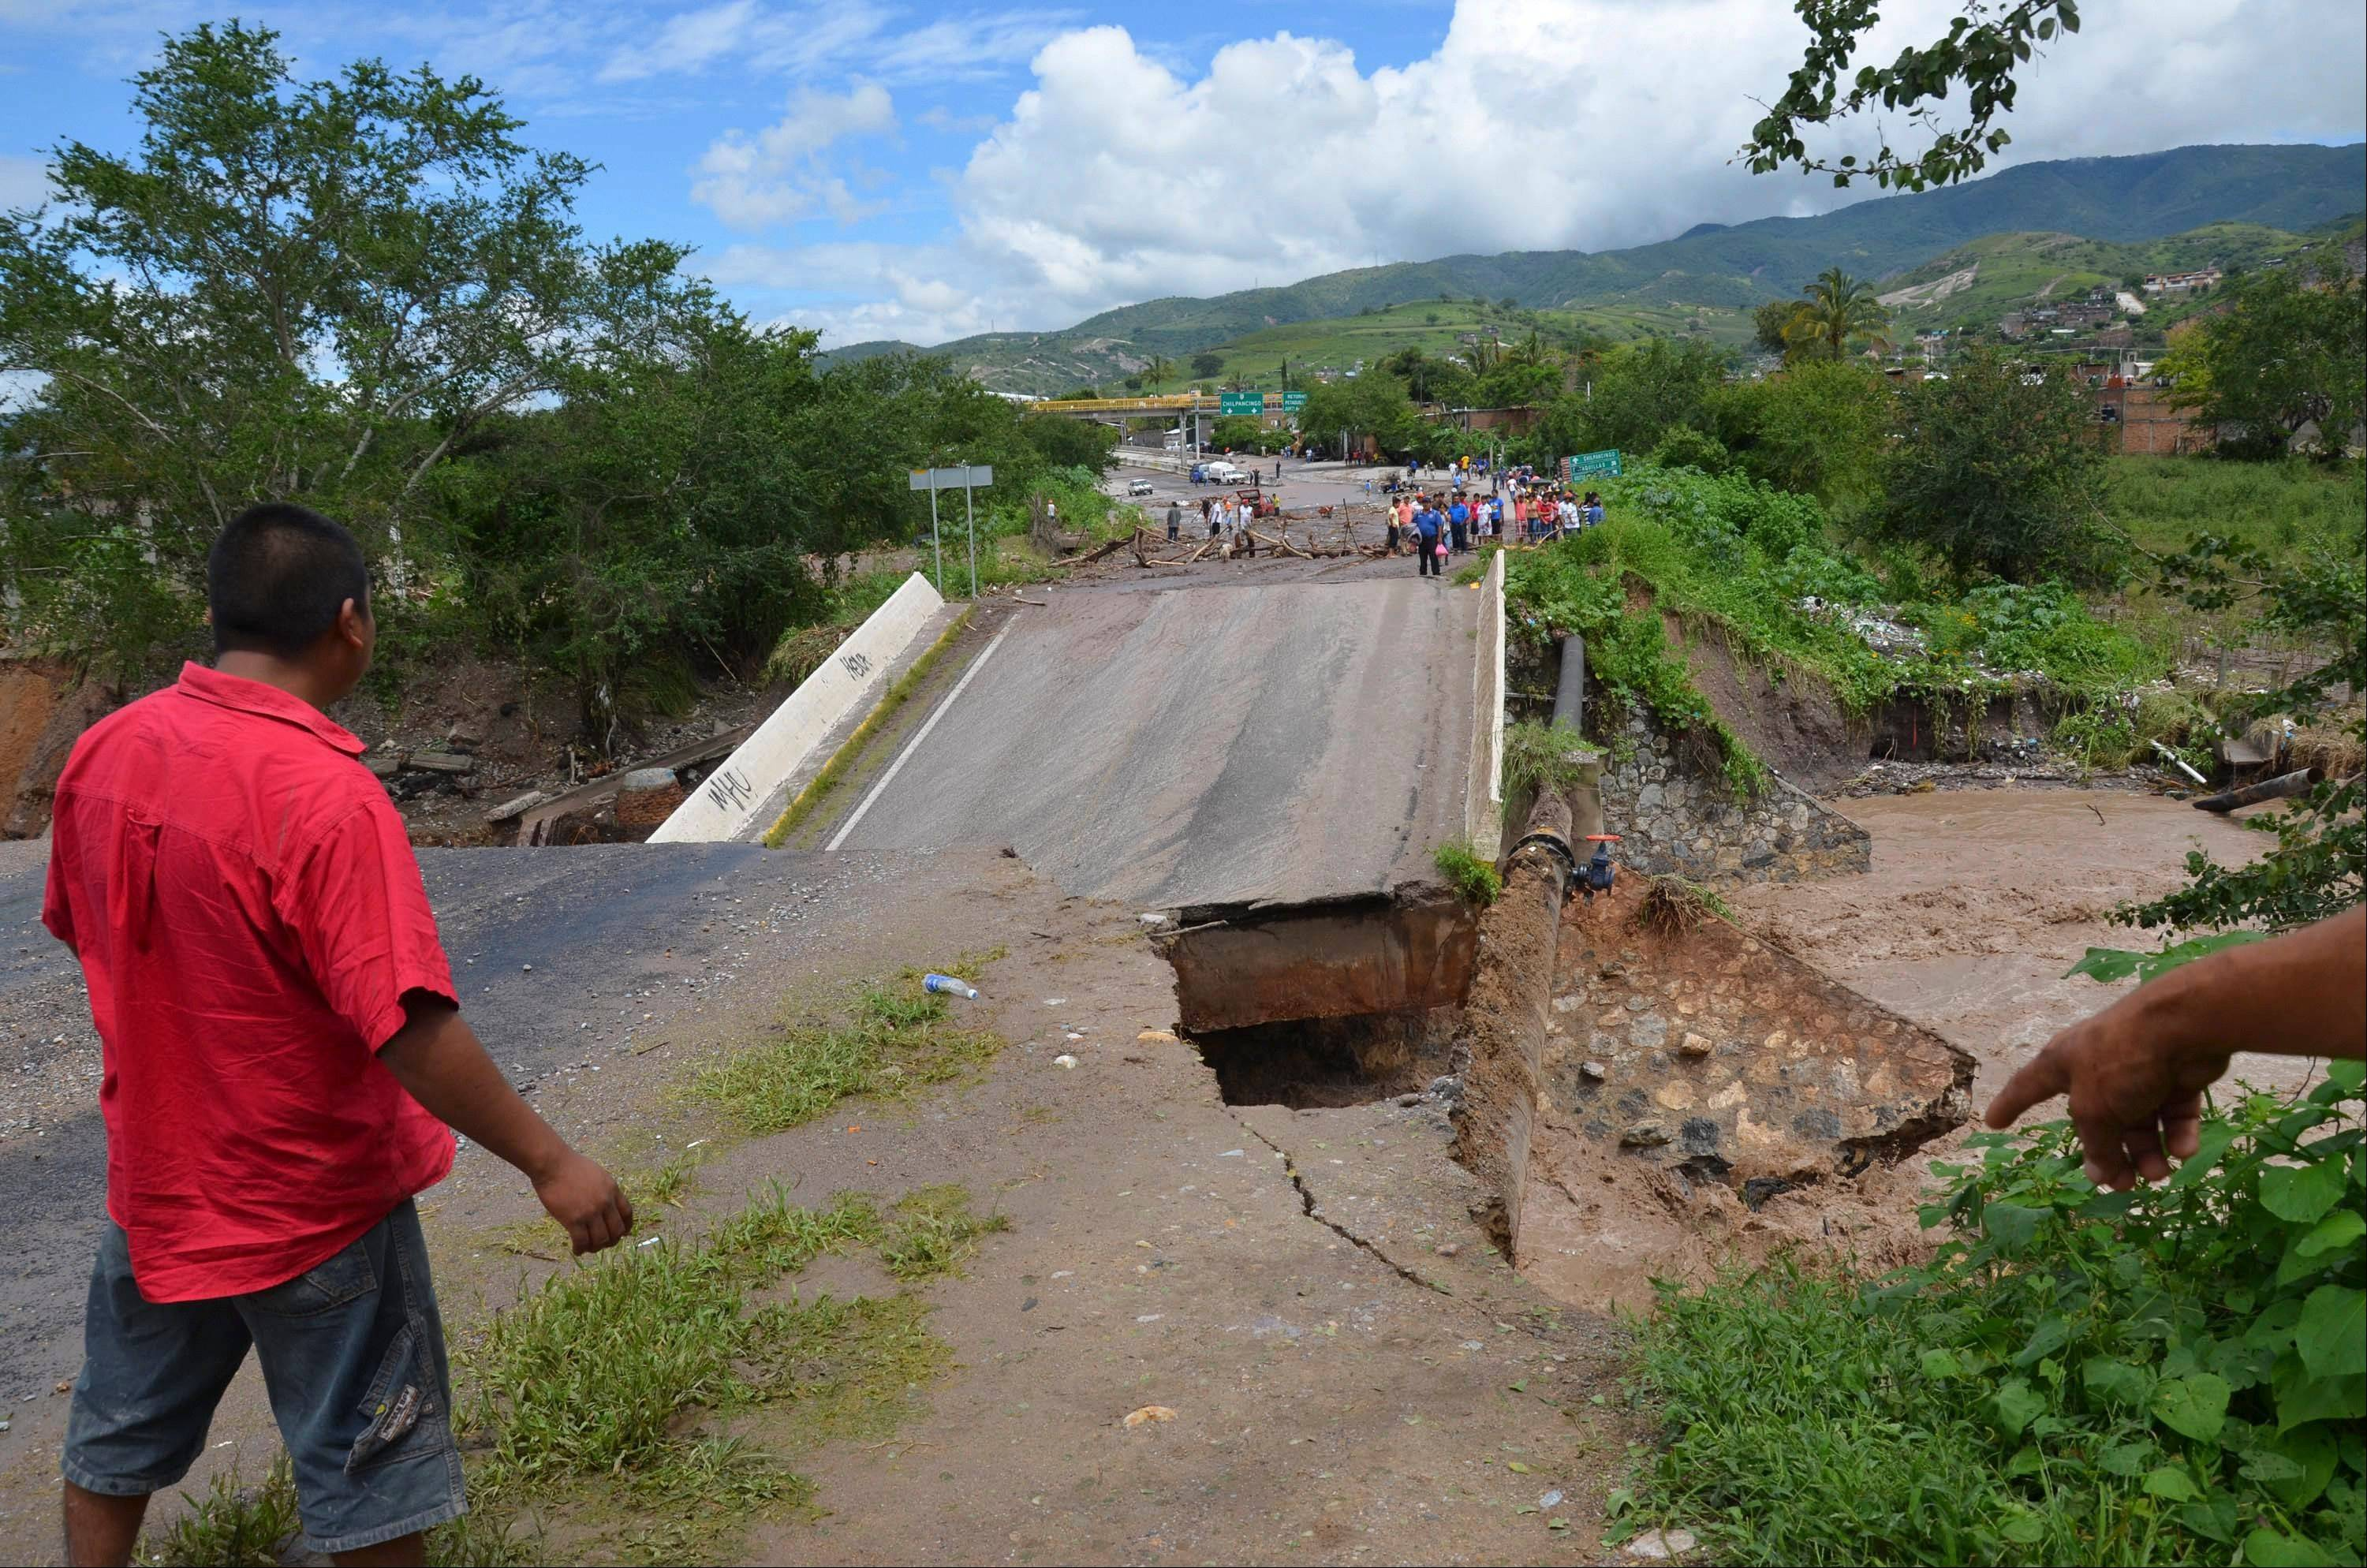 A man looks at a collapsed bridge over the Huacapa River near the town of Petaquillas, Mexico, Tuesday. Twin storms left scenes of havoc on both of Mexico�s coasts on Tuesday, with tens of thousands of tourists stranded in resort city of Acapulco on the Pacific and heavy damage reported along the Gulf coast.